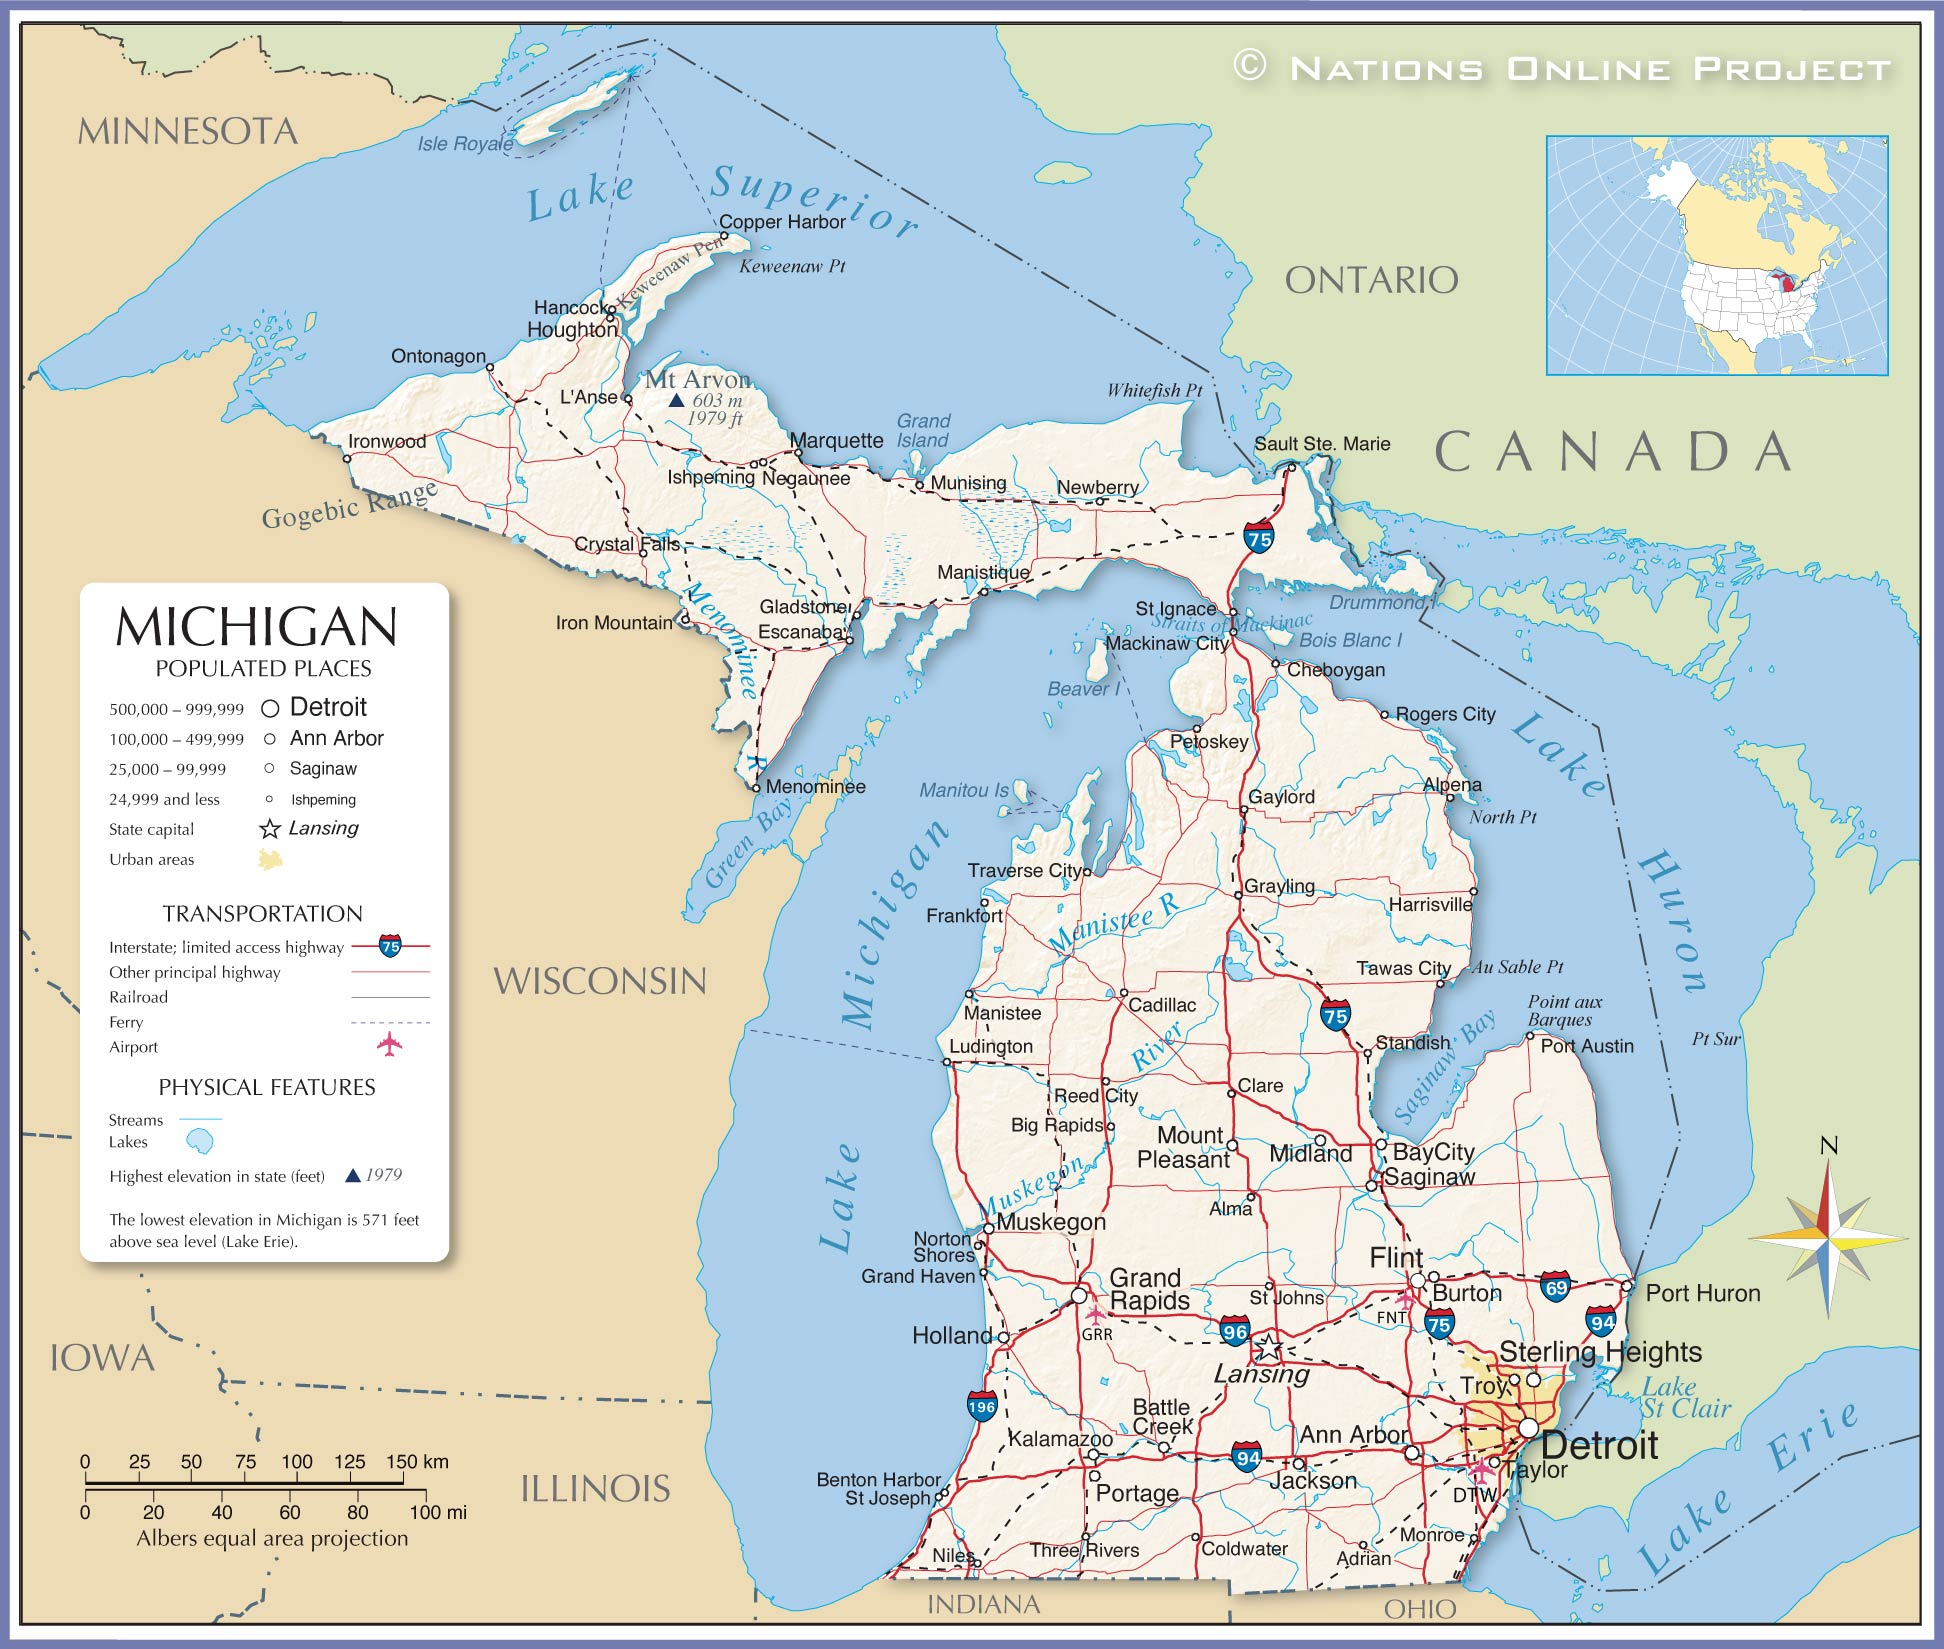 Reference Map Of Michigan USA Nations Online Project - Us map michigan